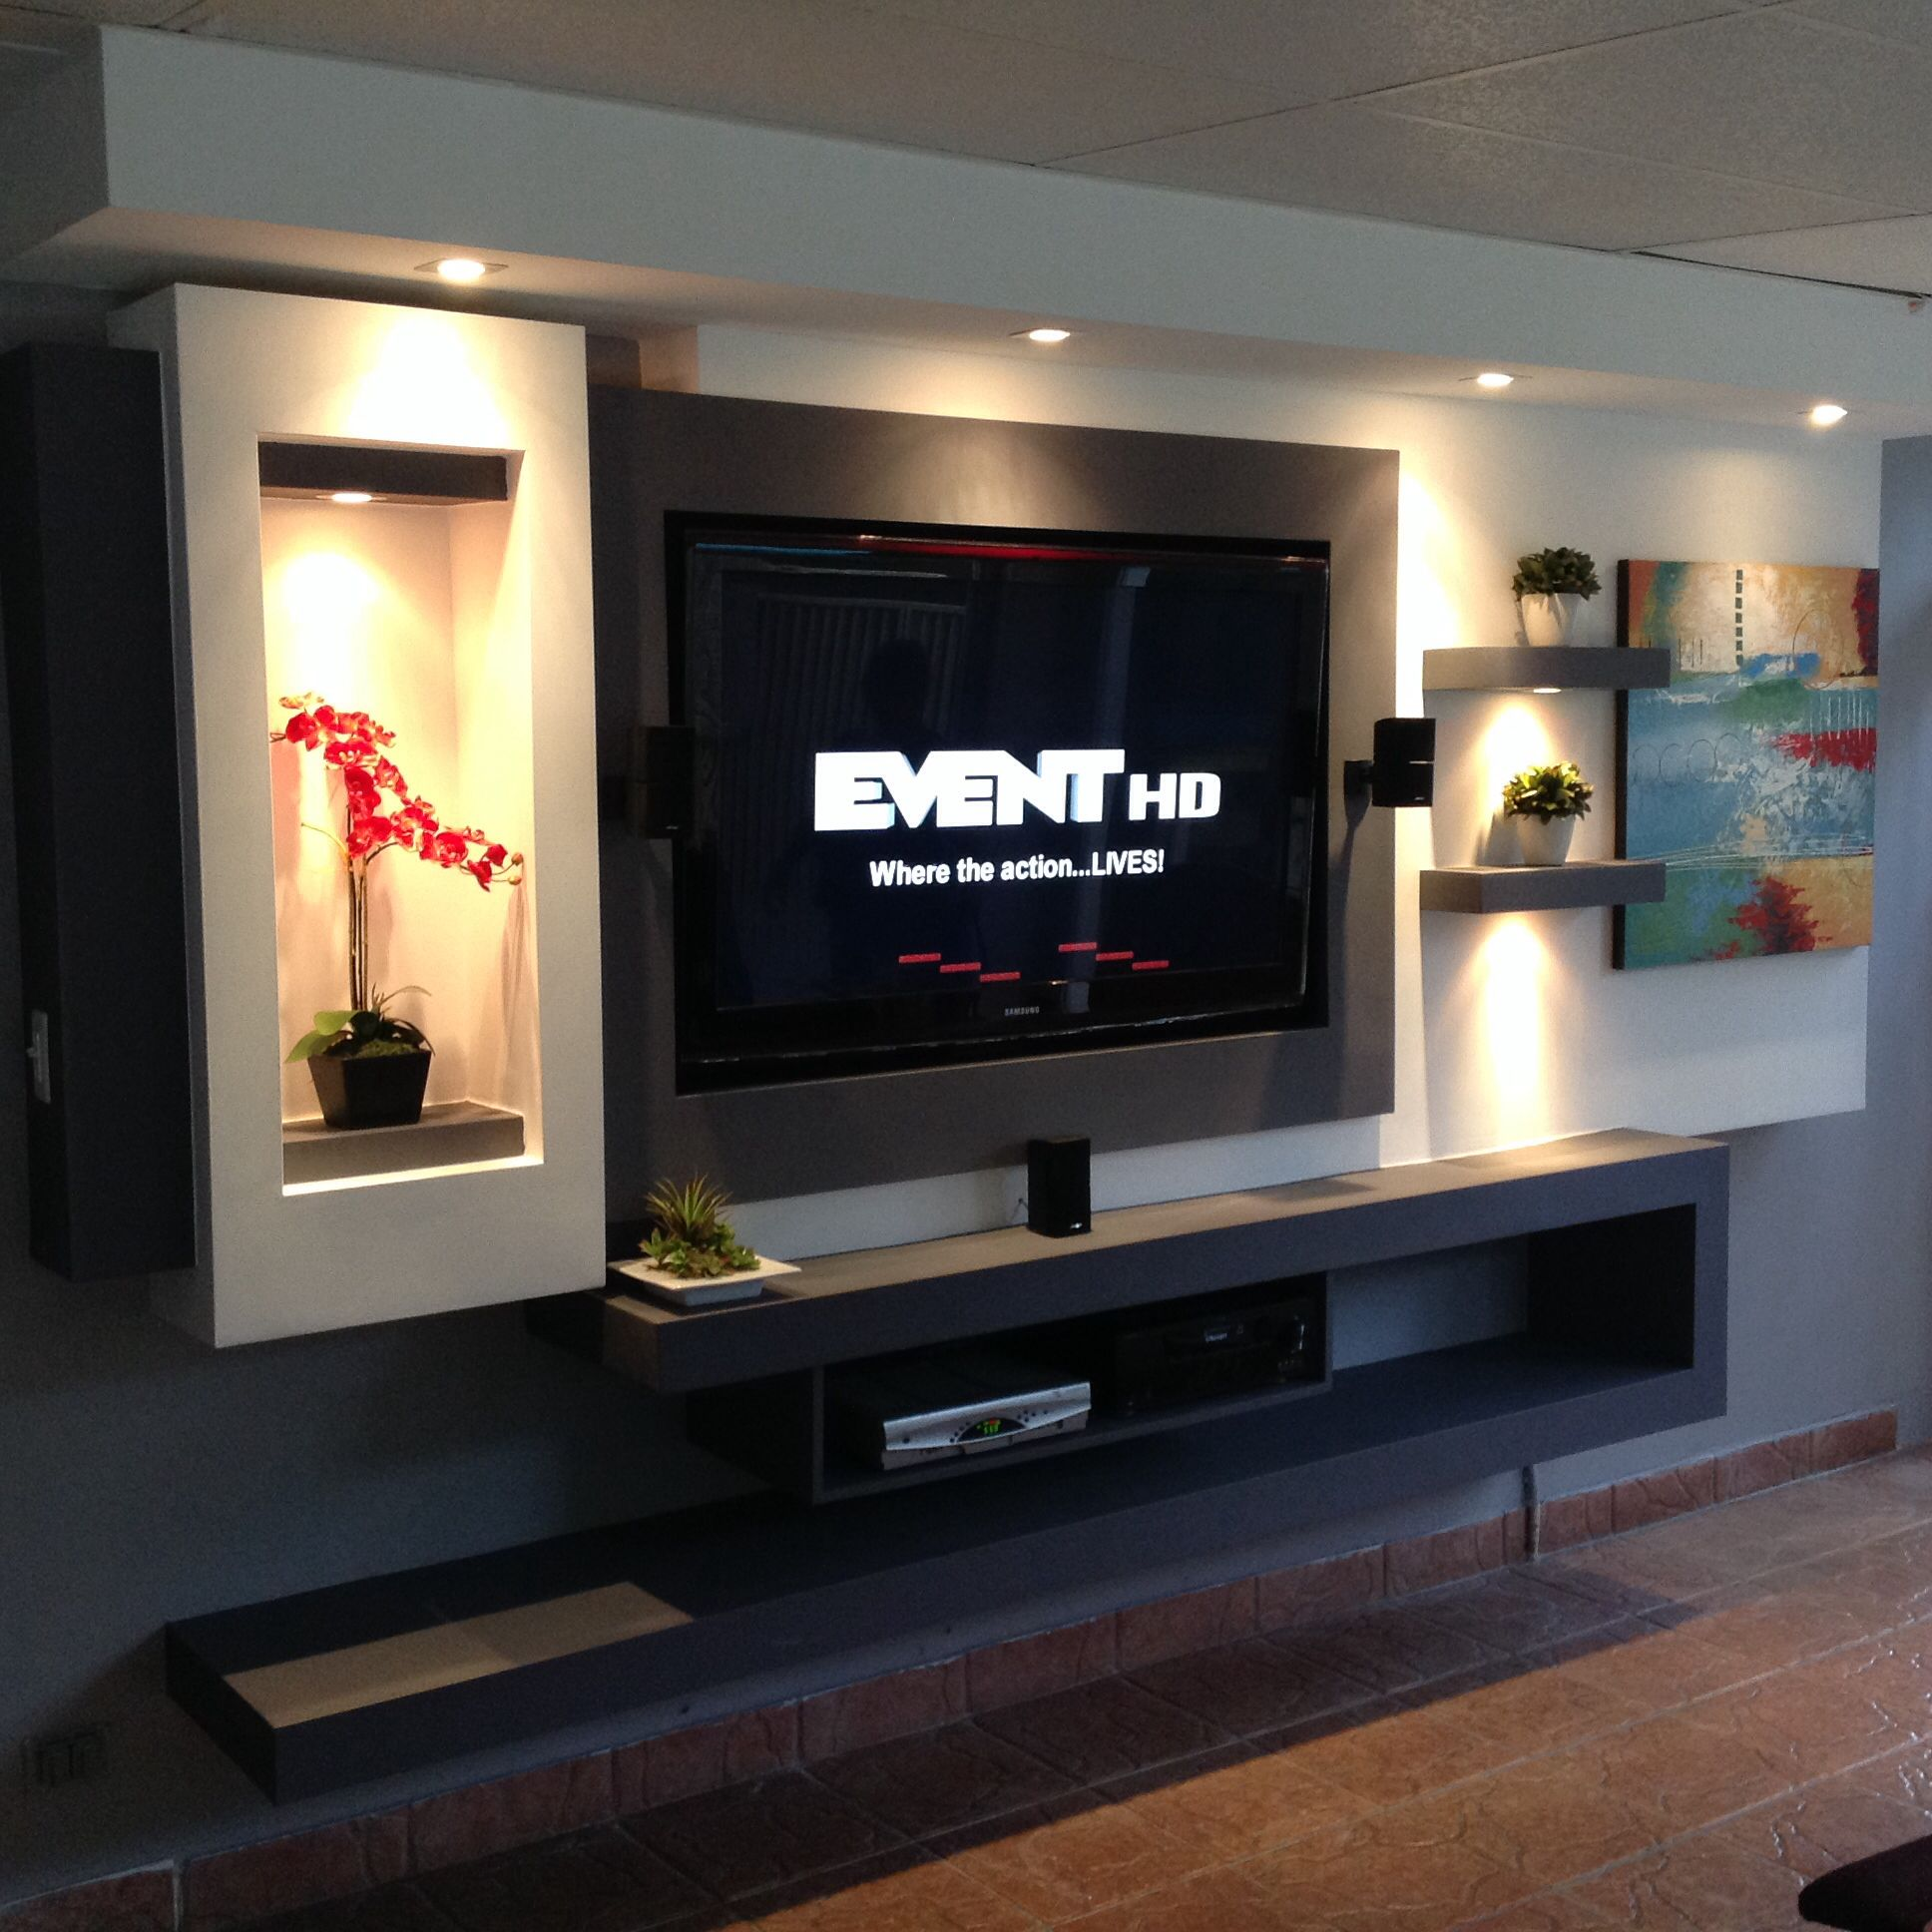 Meuble Tv Made In Design Tv In Wall Made With Gypsum Board Ceiling Design Pinterest